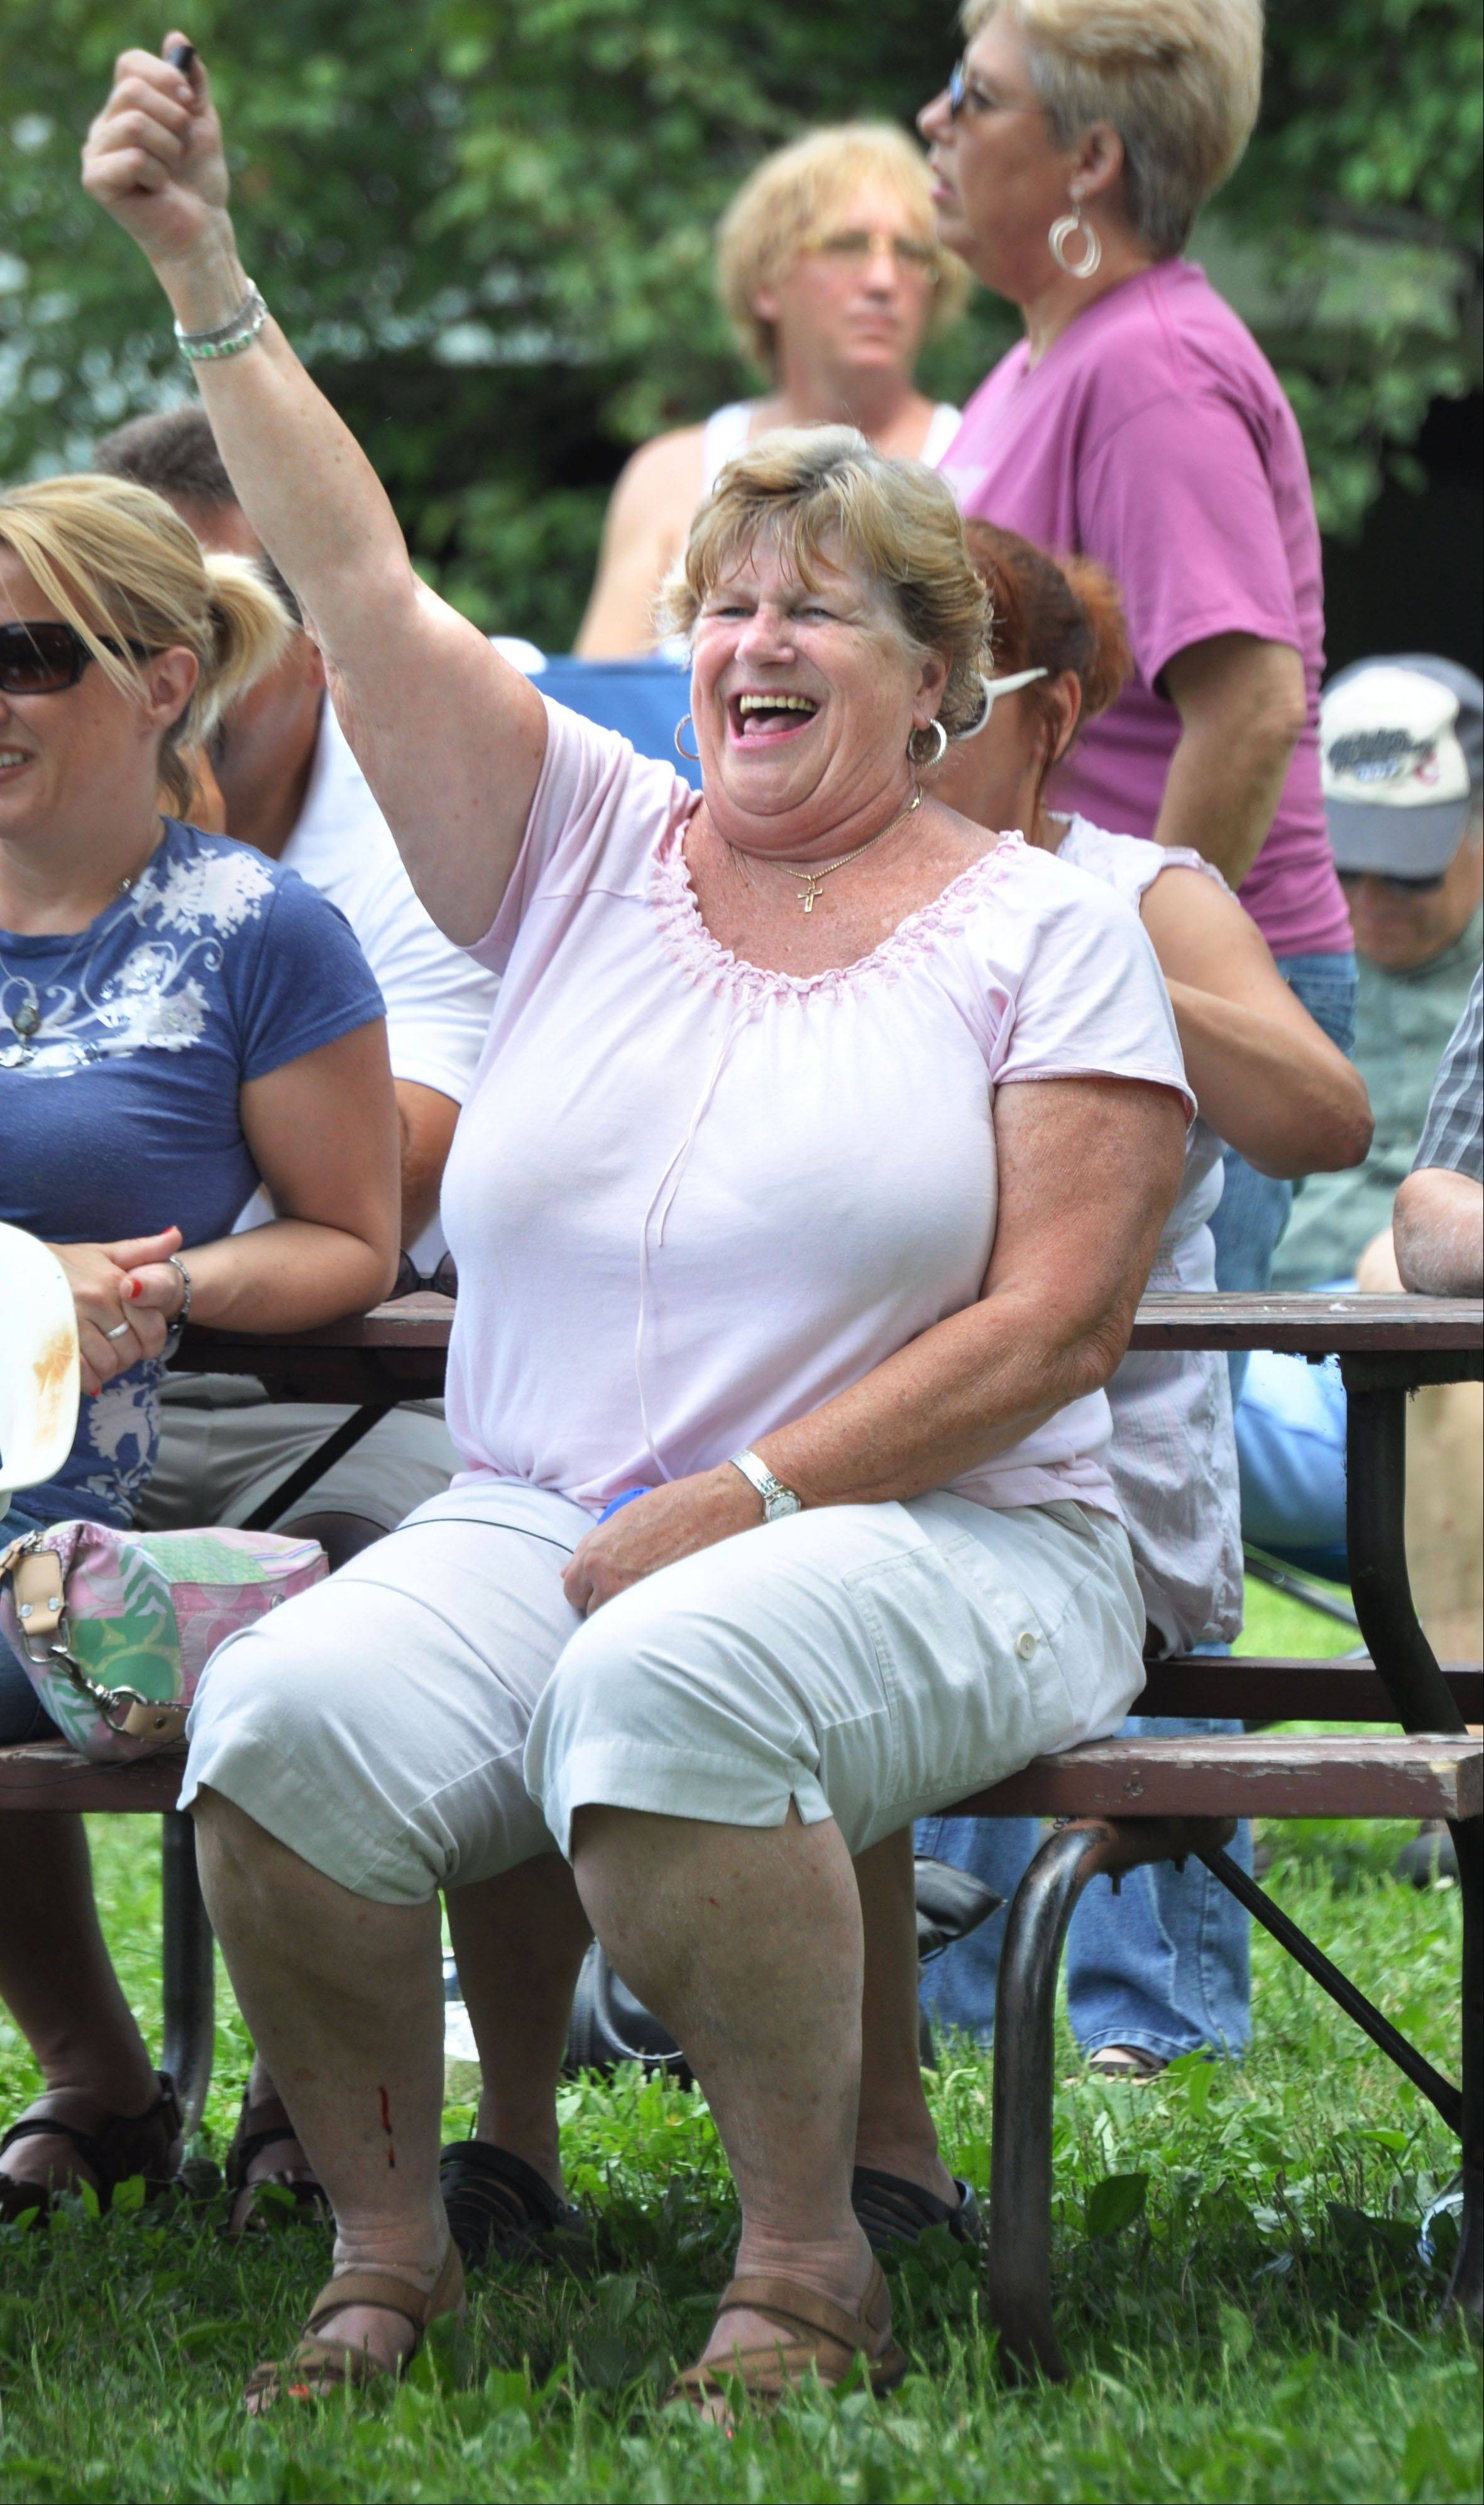 Kathy Bodnar from West Chicago sings along to the band Jordan at the second annual Anonapalooza Family Summerfest in Geneva last year.